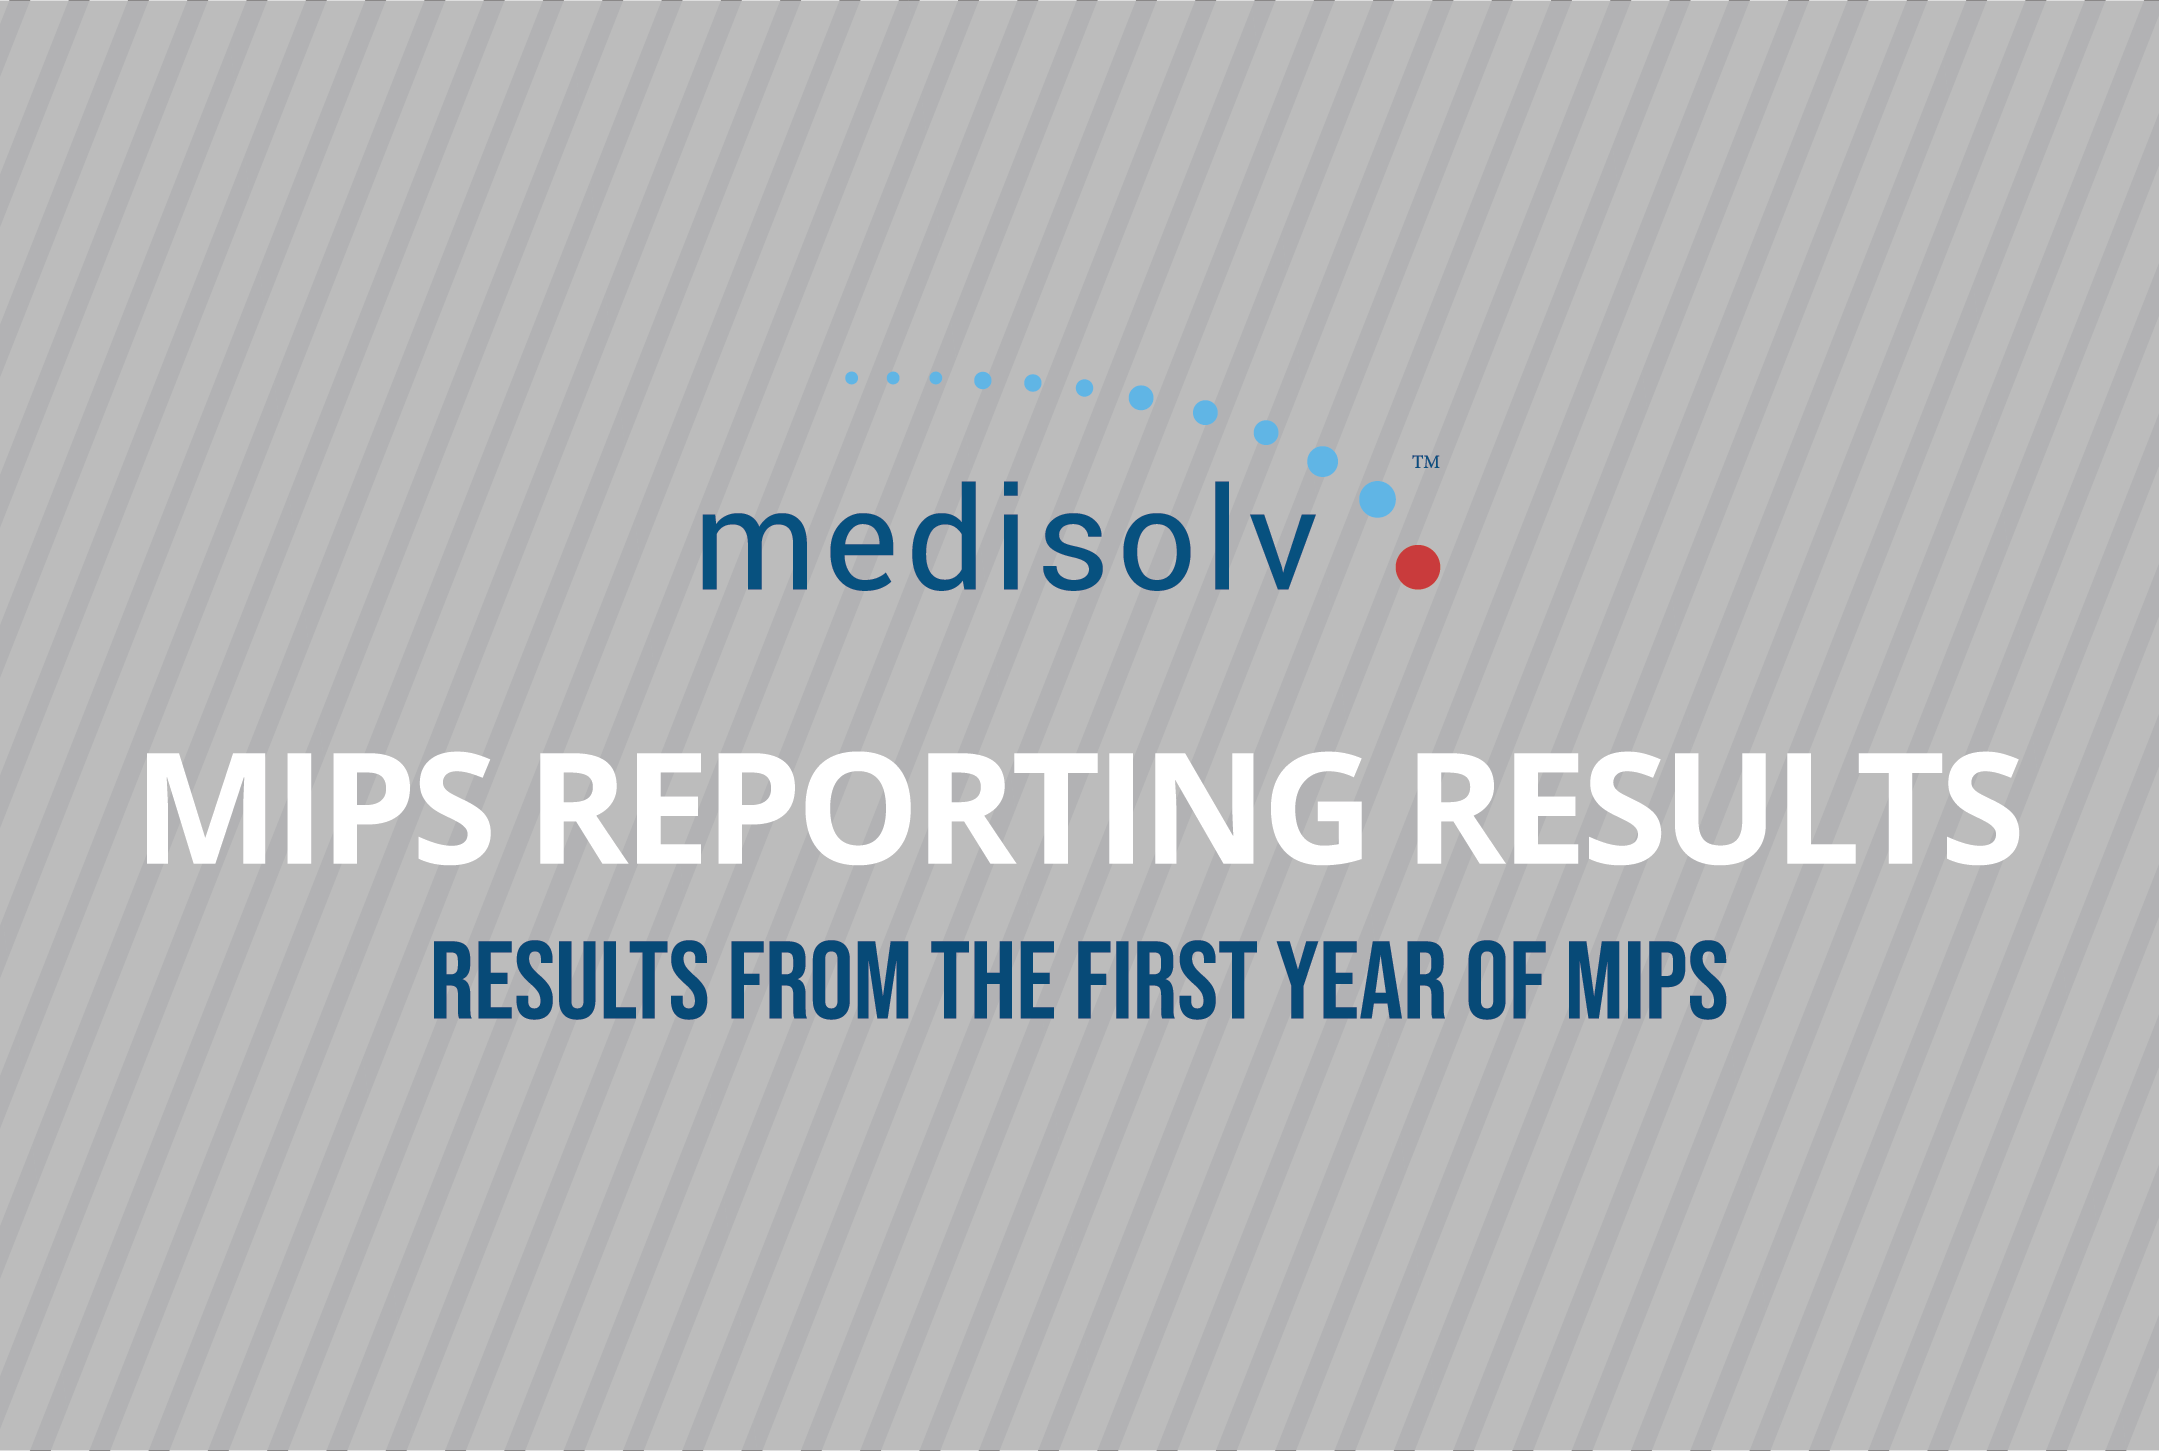 MIPS-Results-Featured-Image-01